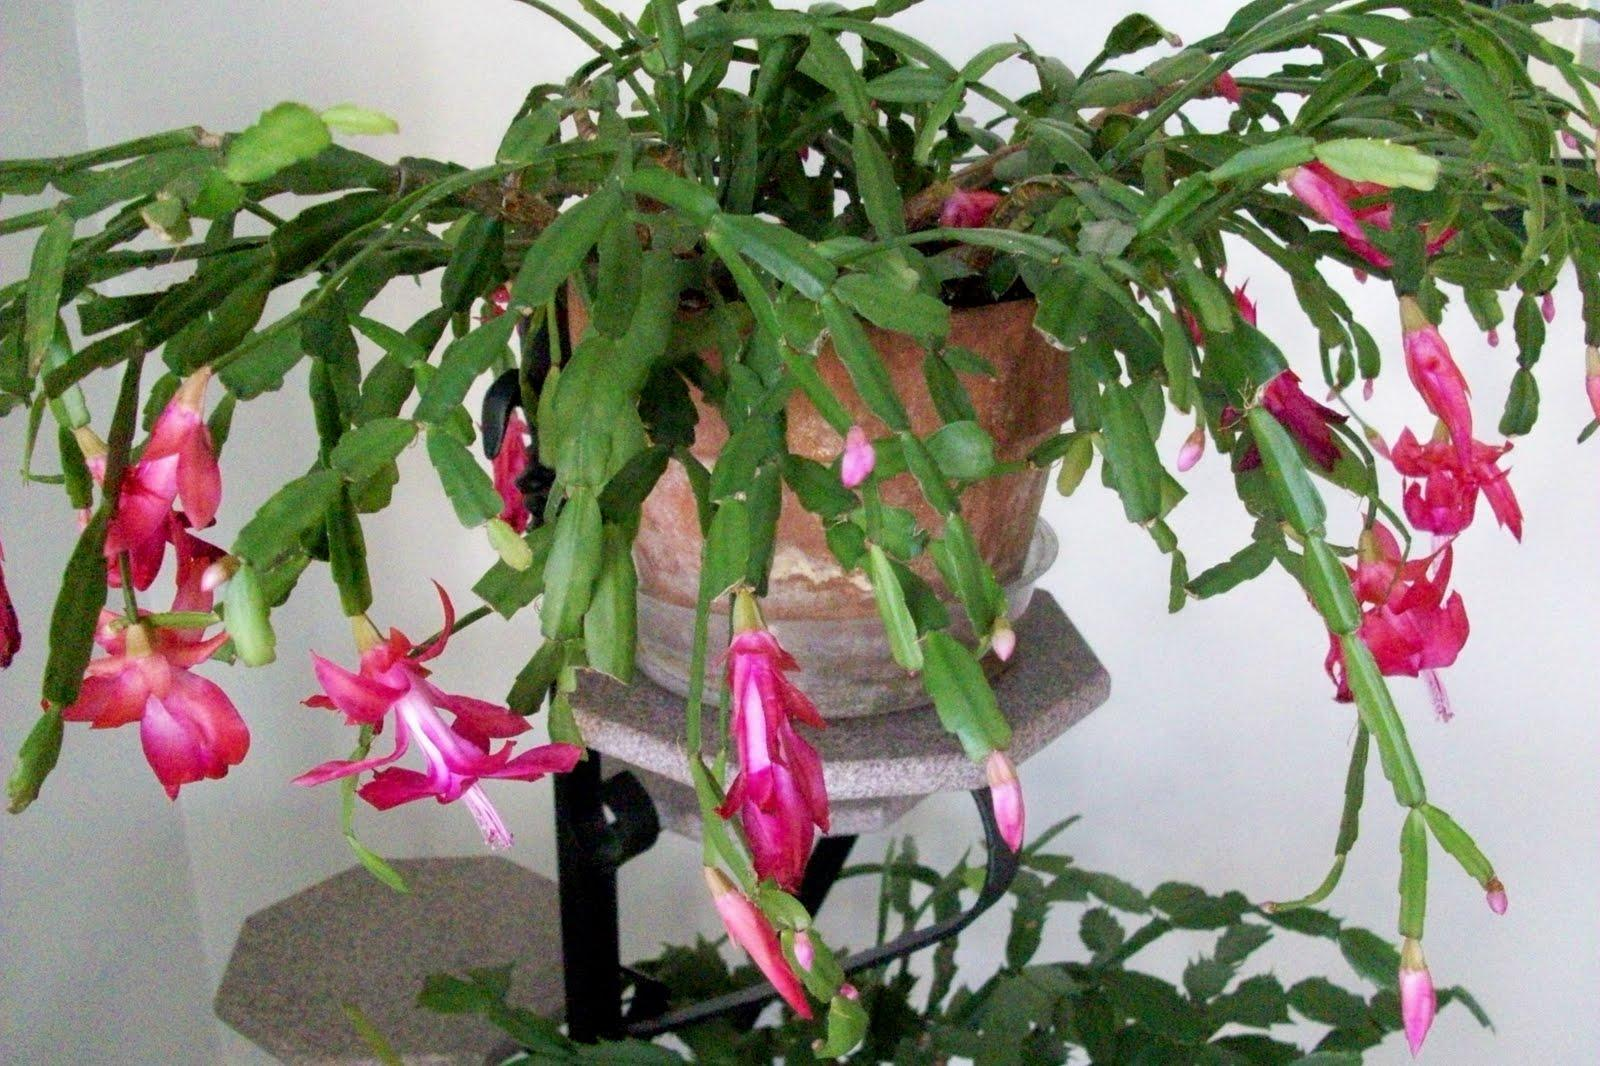 repot christmas cactus into a pot only slightly larger than the current container be sure the container has a drainage hole in the bottom